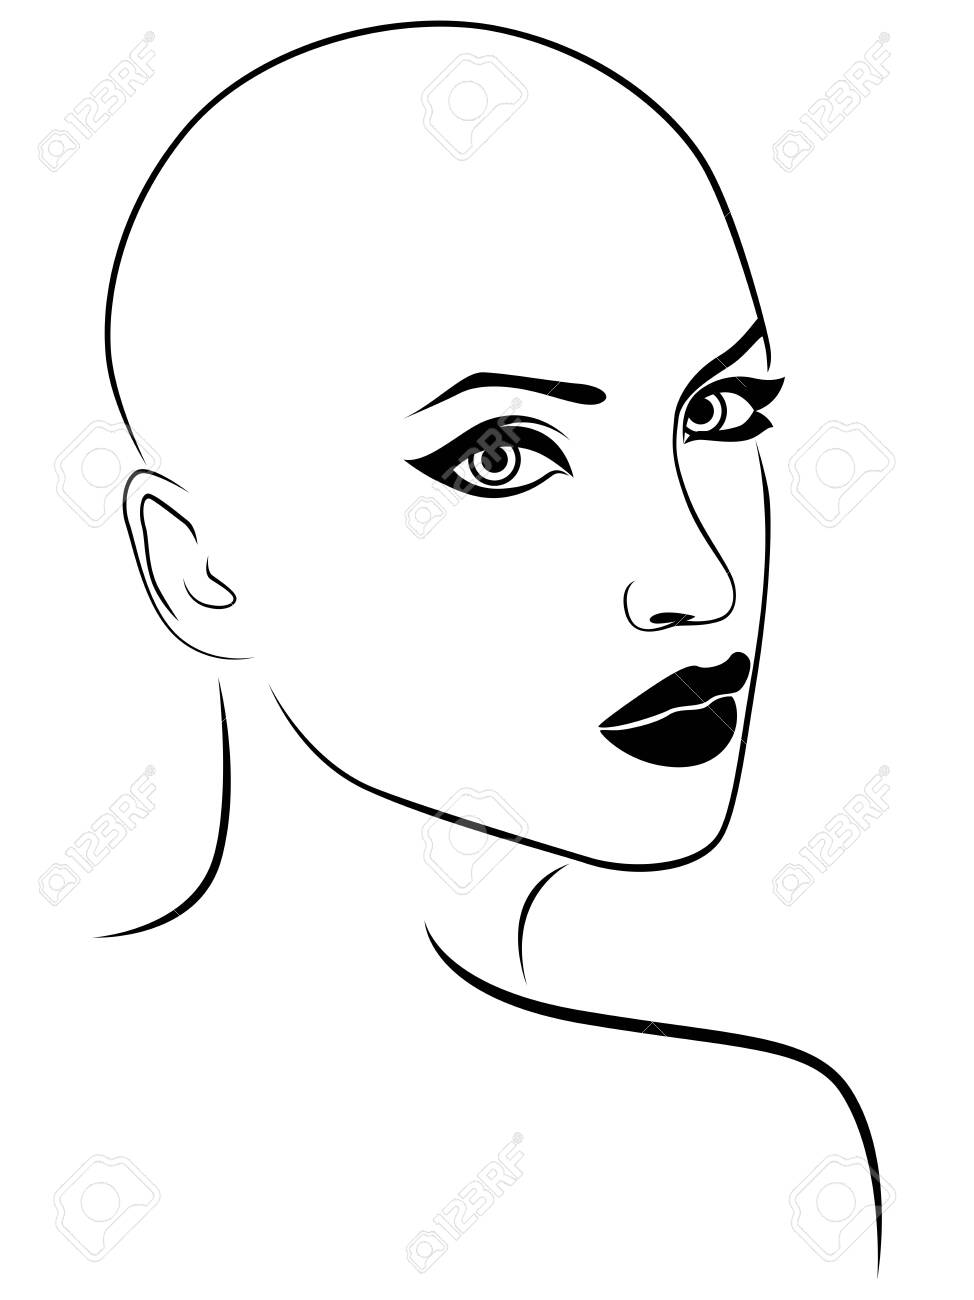 Outline face of charming and attractive woman, black isolated on the white background - 146016472